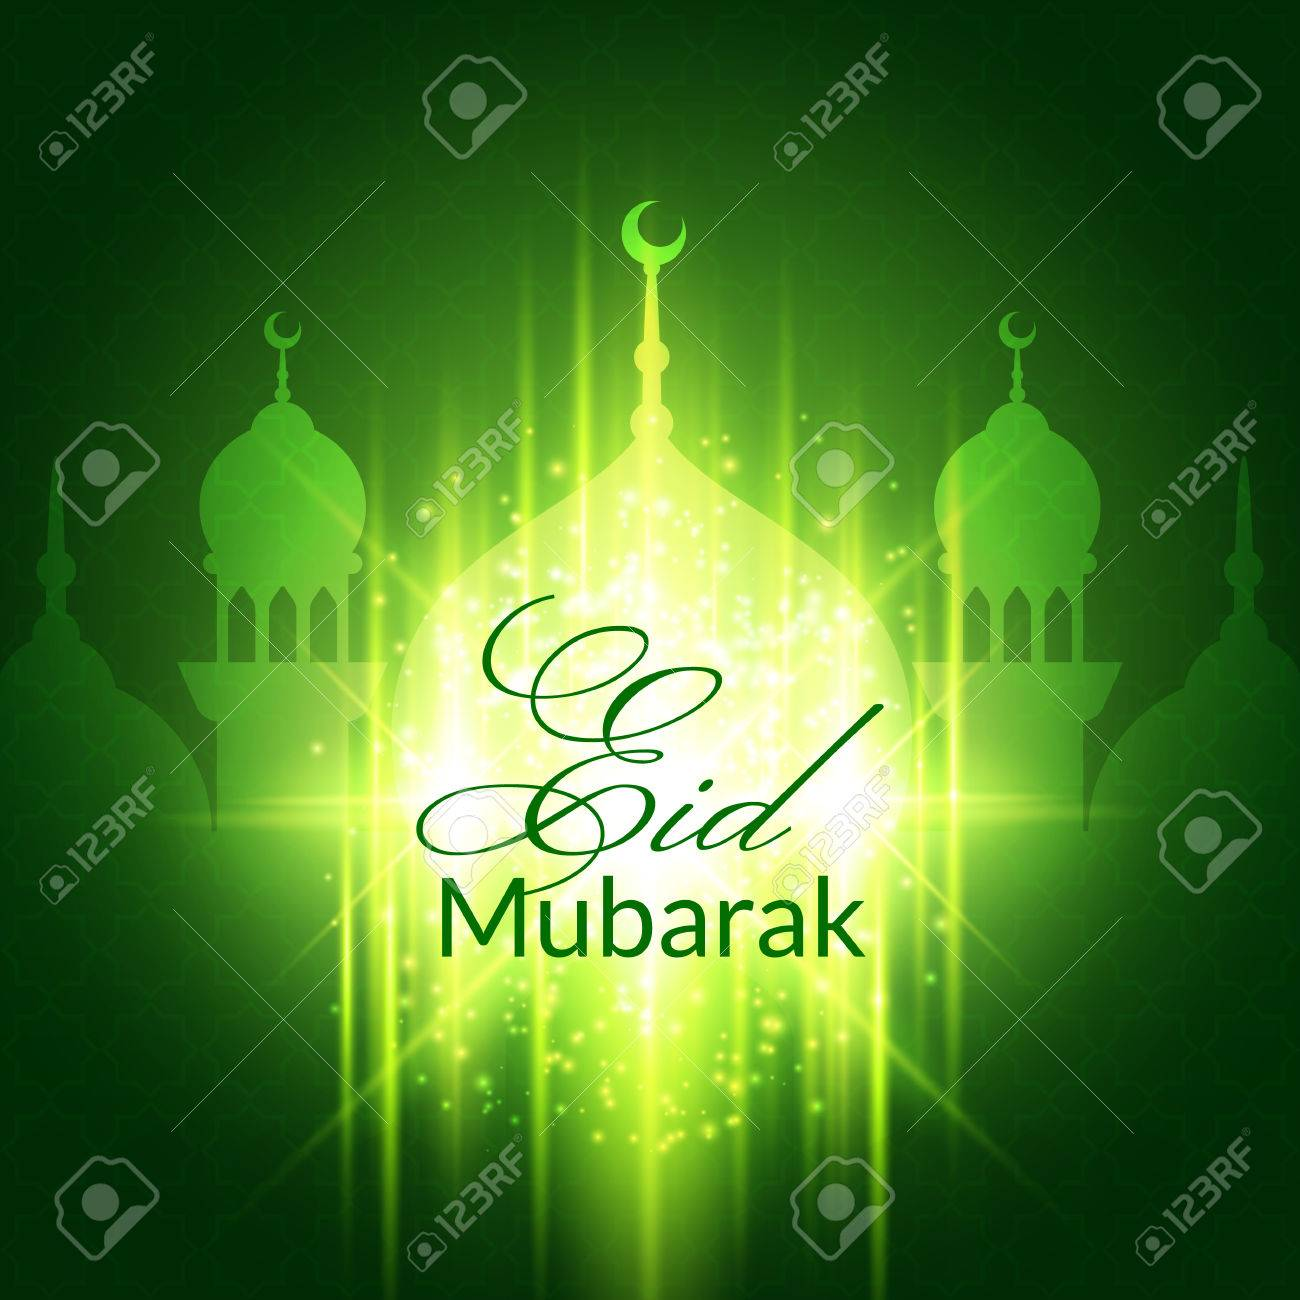 Eid Mubarak Greeting Card With Mosque And Lights Vector Festive